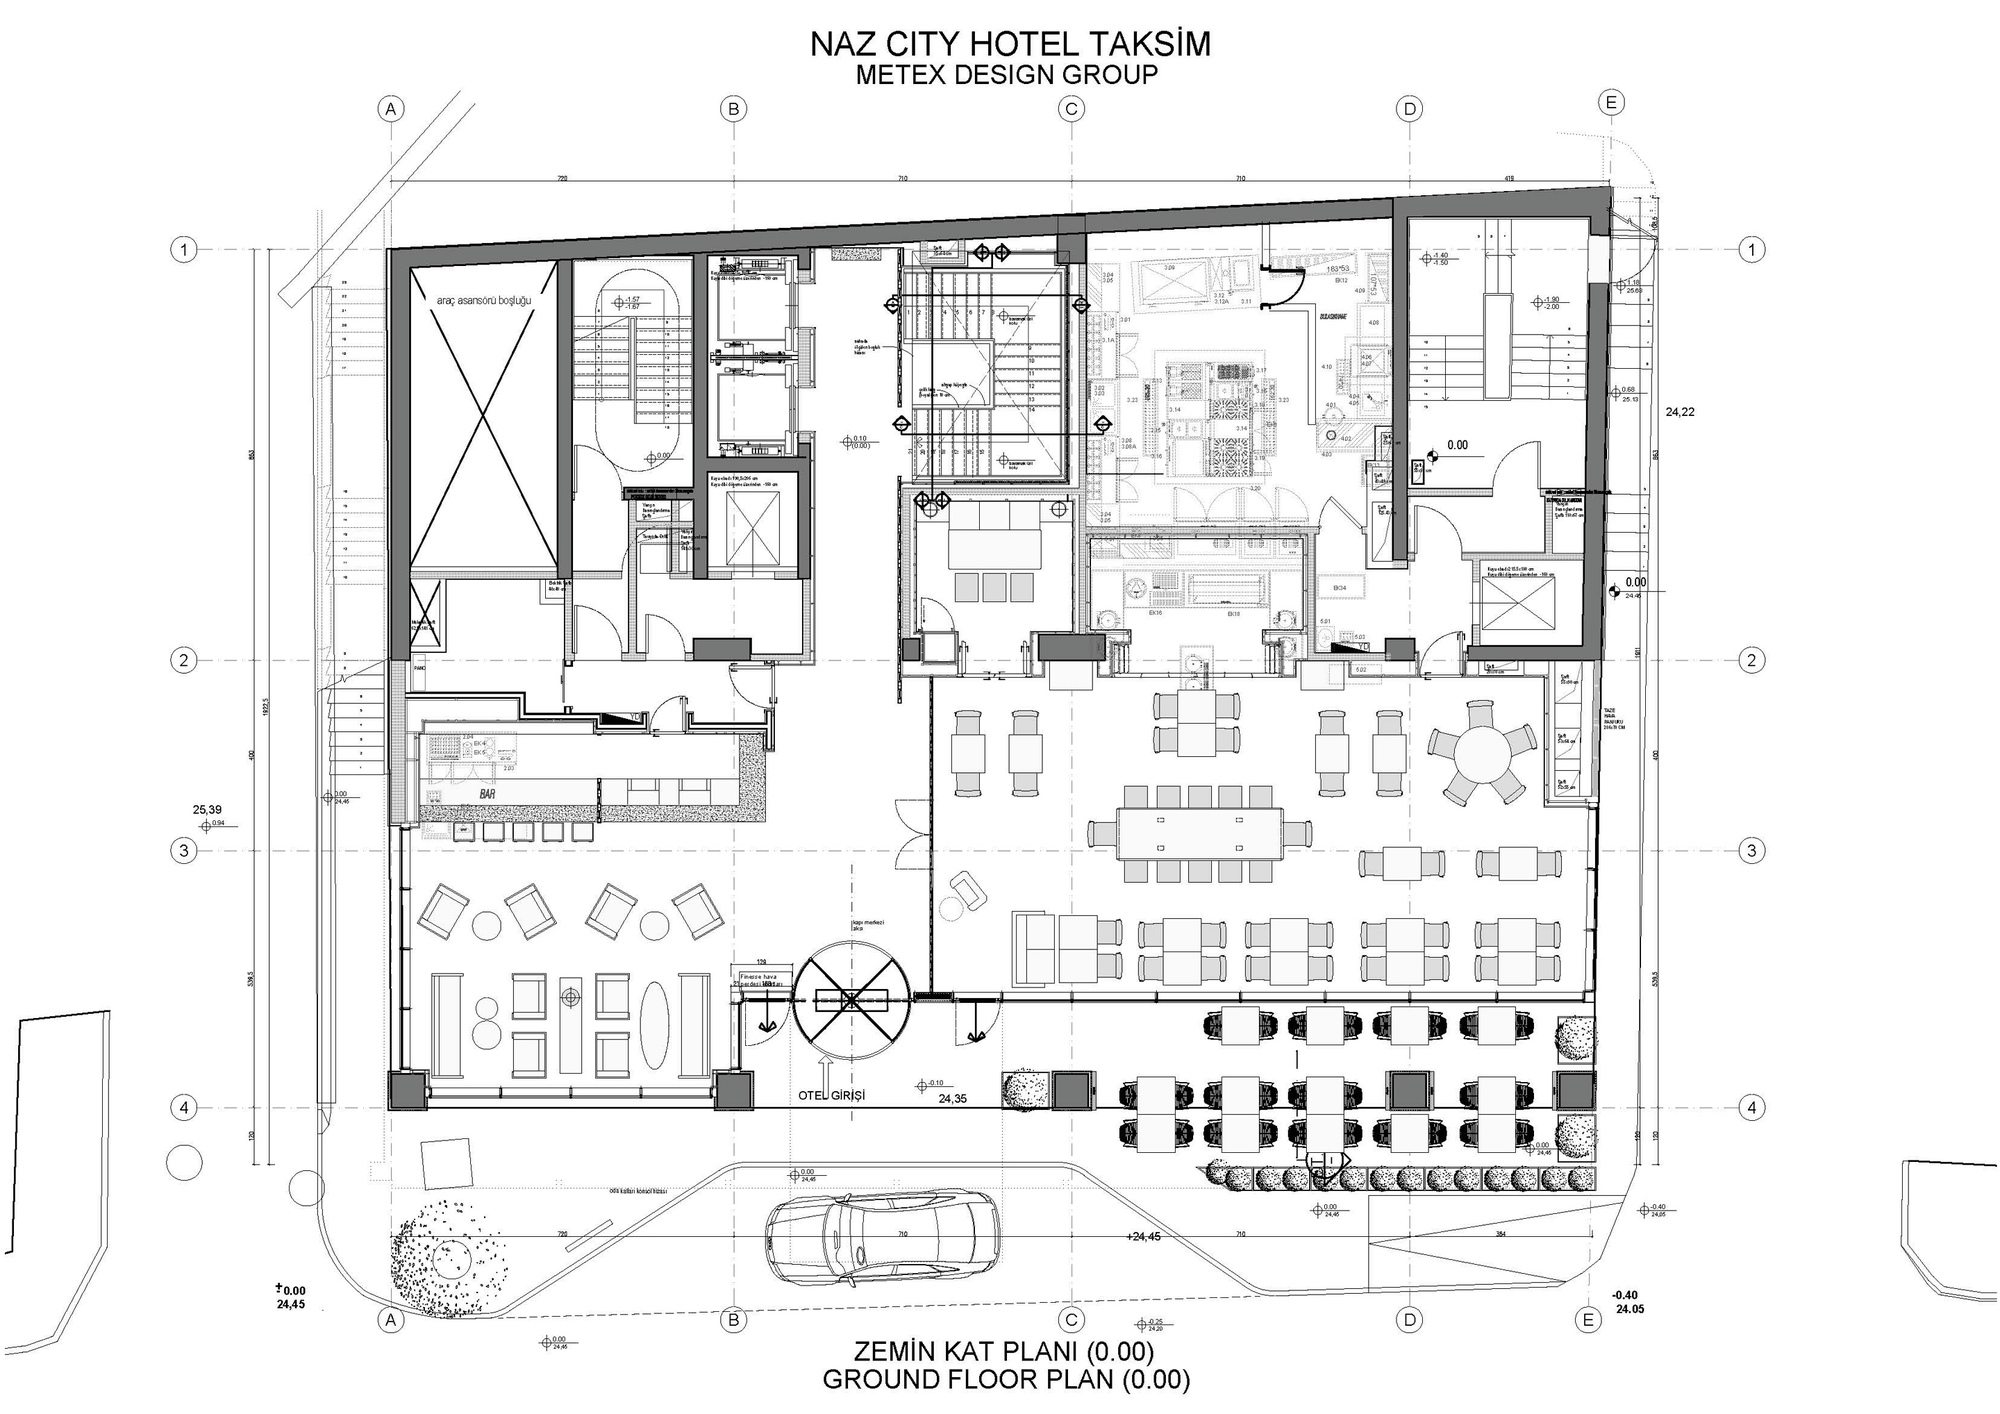 Gallery Of Naz City Hotel Taksim Metex Design Group 41